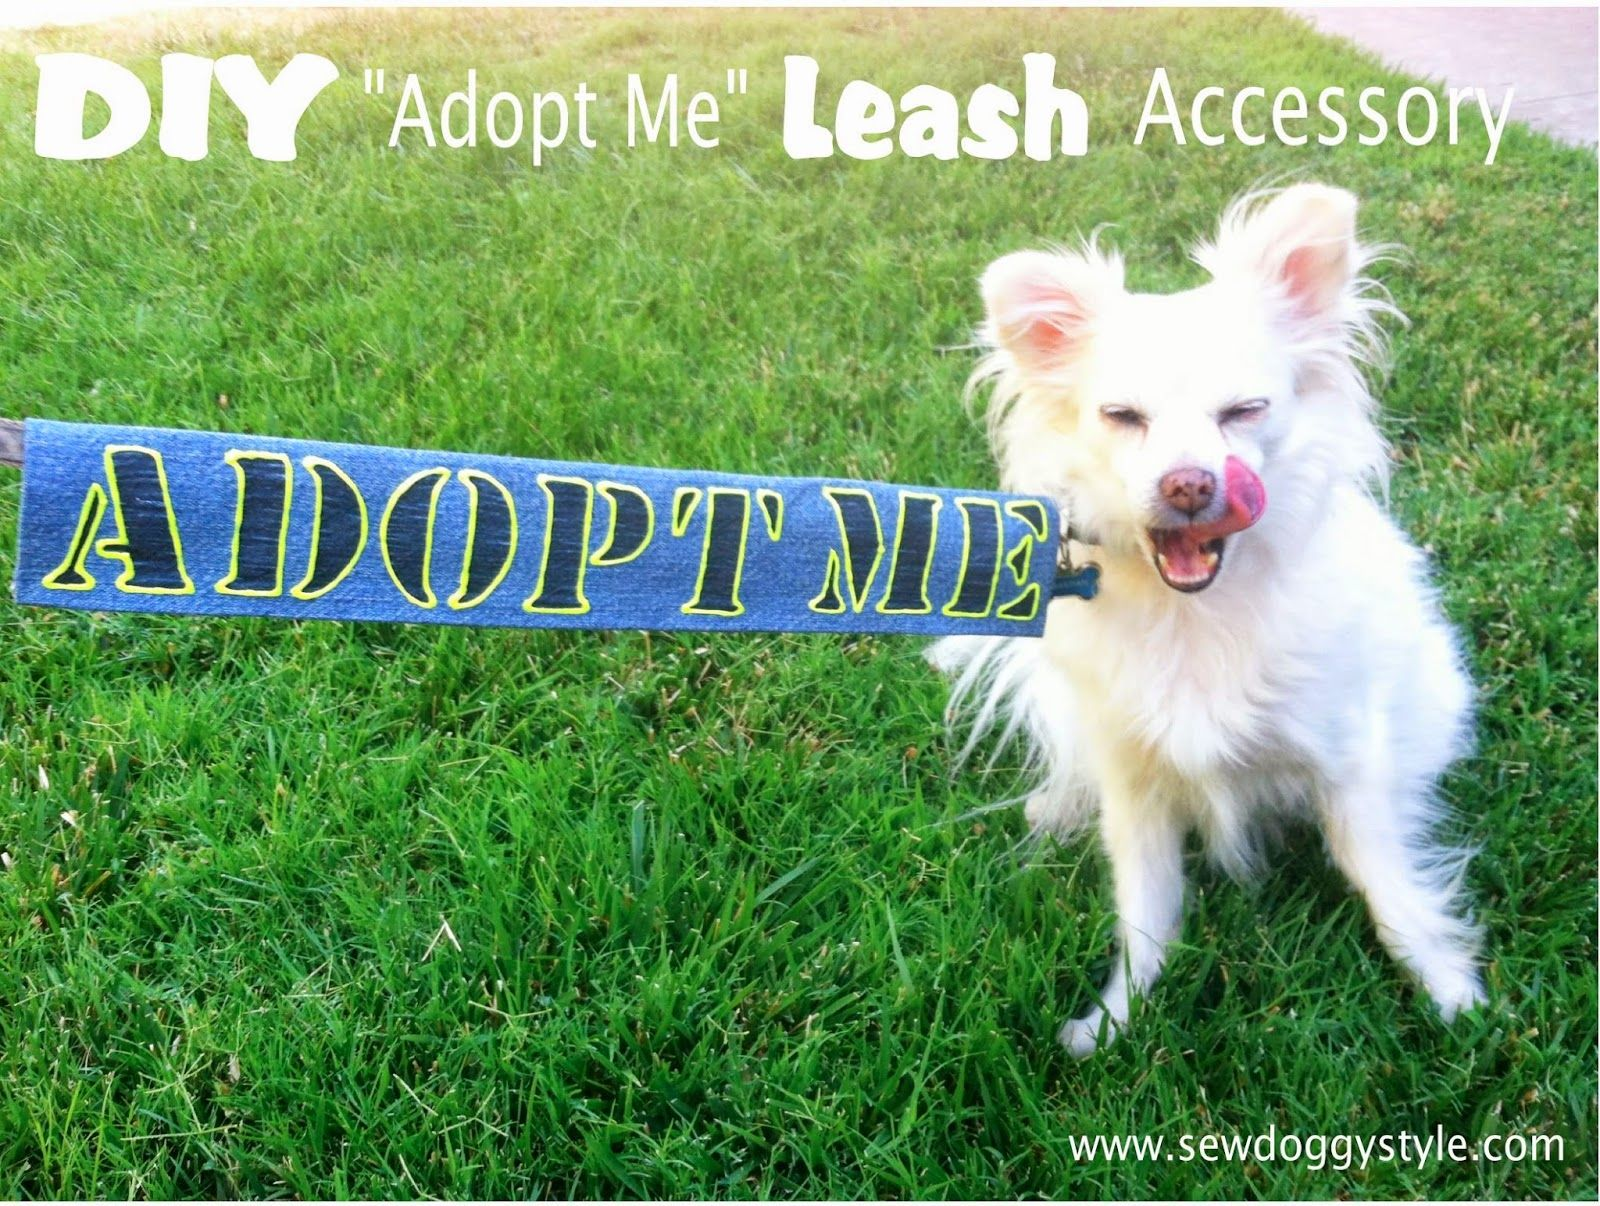 Diy Adopt Me Leash Accessory Animal Shelter Crafts Animal Shelter Volunteer Foster Dog